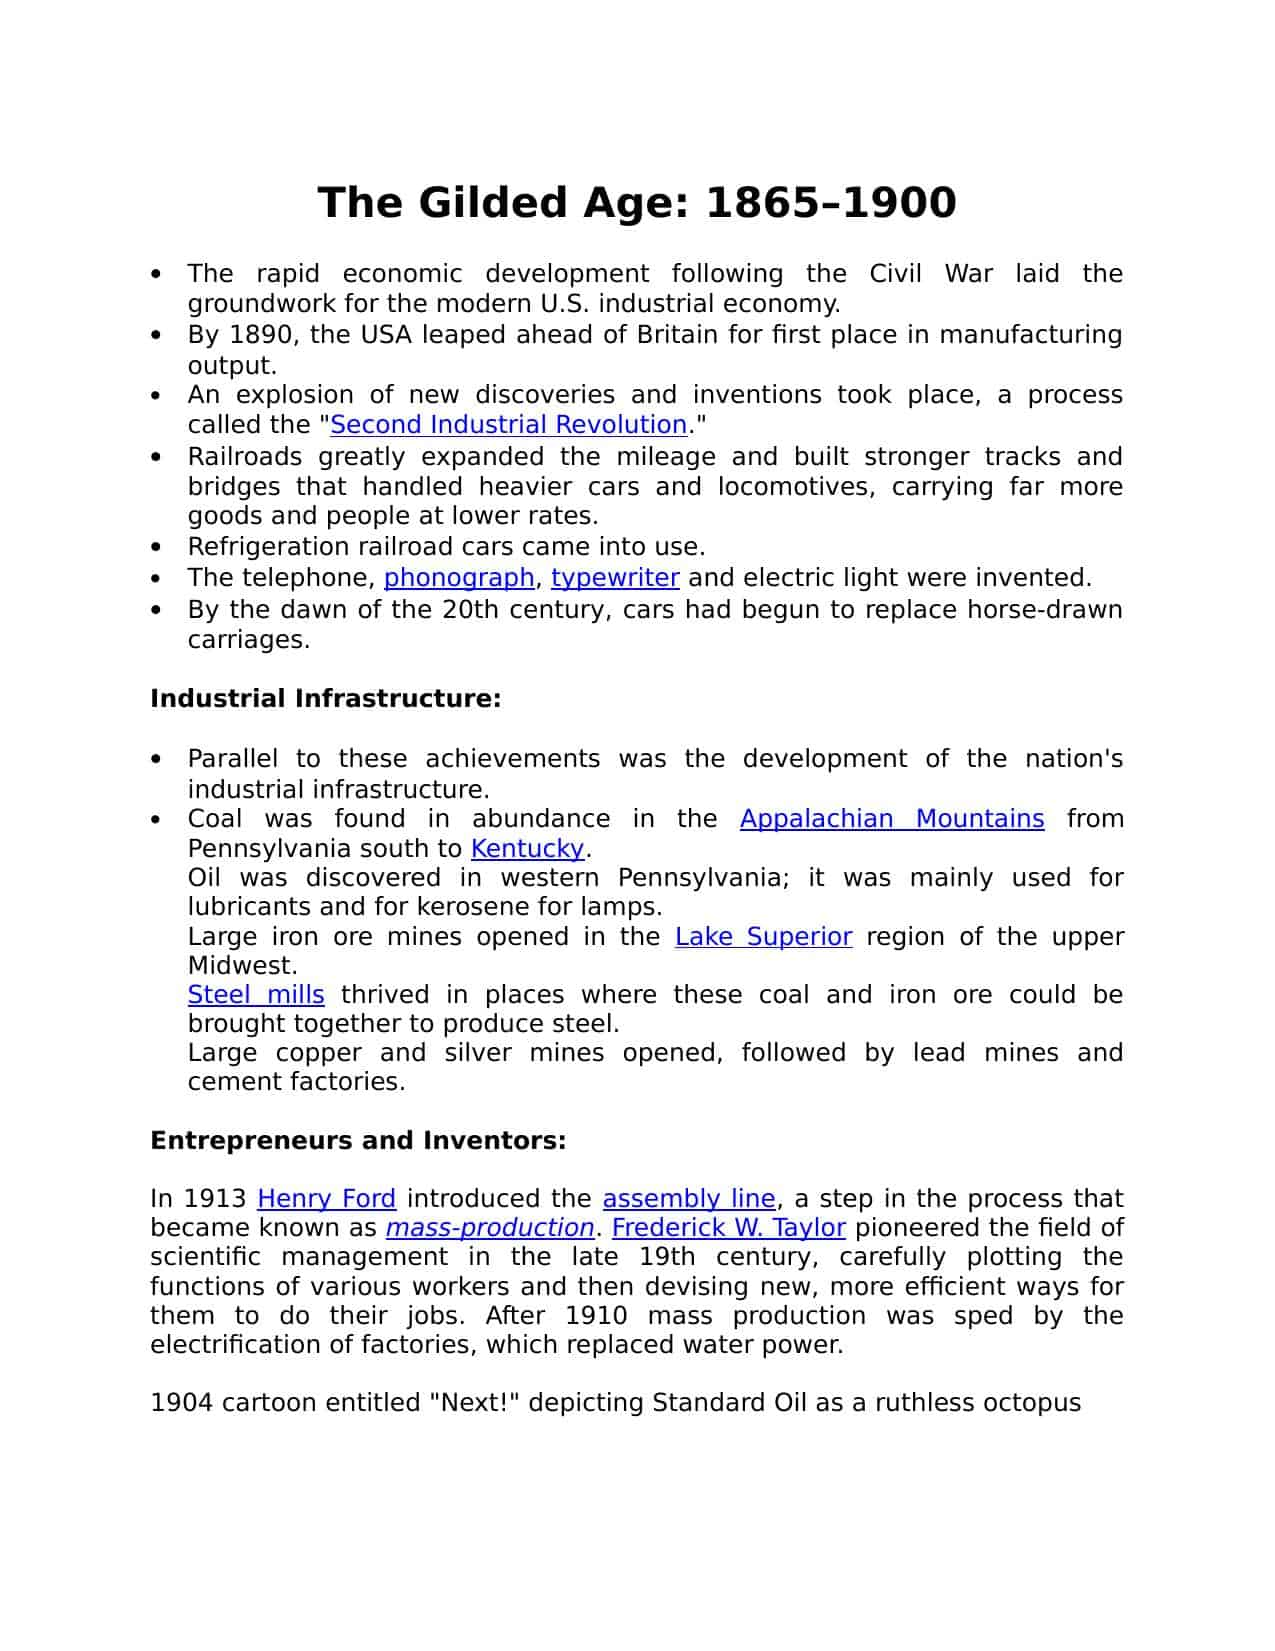 American Finance In The Gilded Age Worksheet